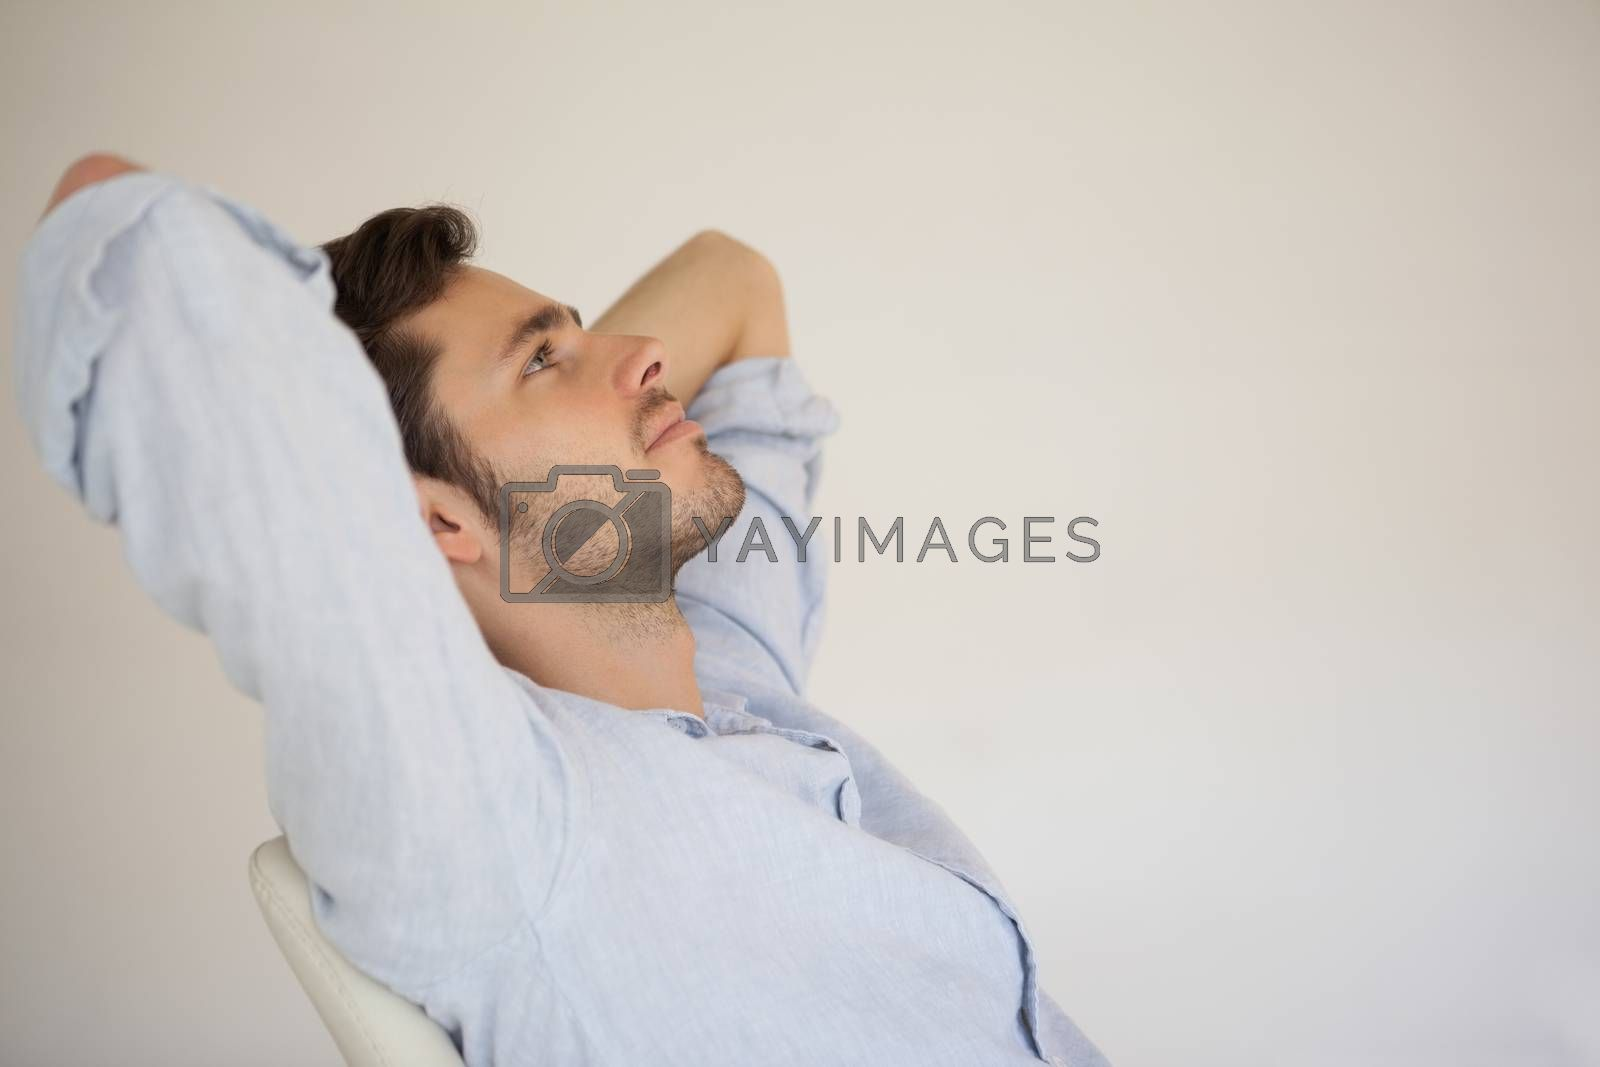 Royalty free image of Casual businessman relaxing at desk leaning back by Wavebreakmedia